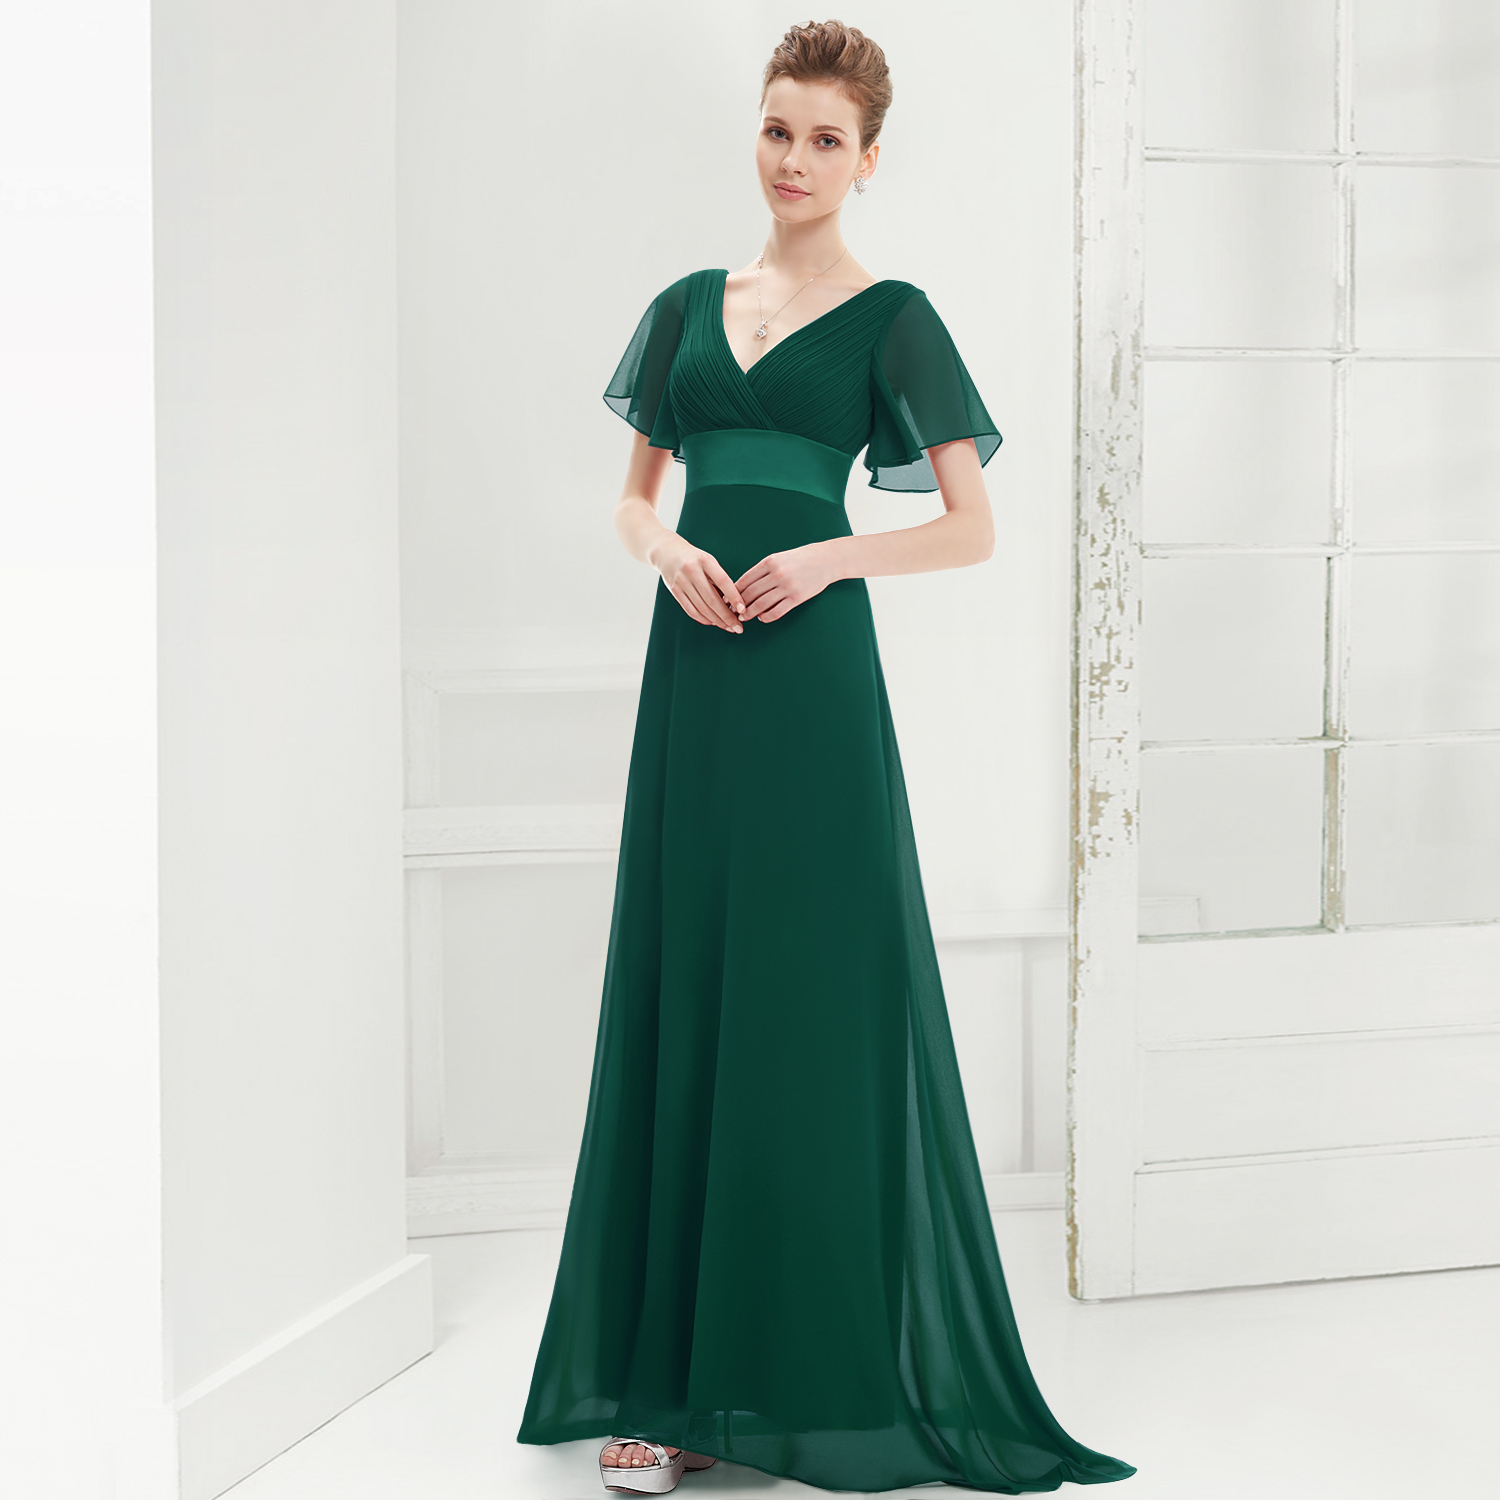 New-Glamorous-Green-Double-V-Neck-Ruffles-Padded-Evening-Dress-09890-AU-Size-08